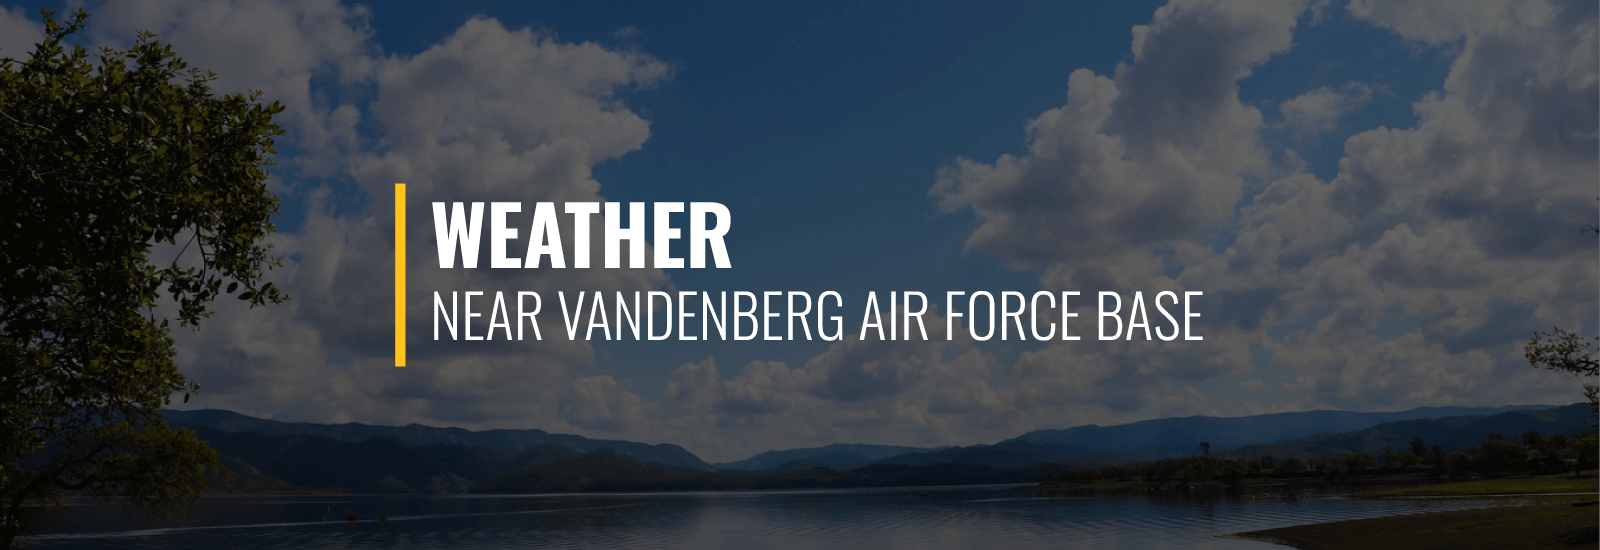 Vandenberg AFB Weather